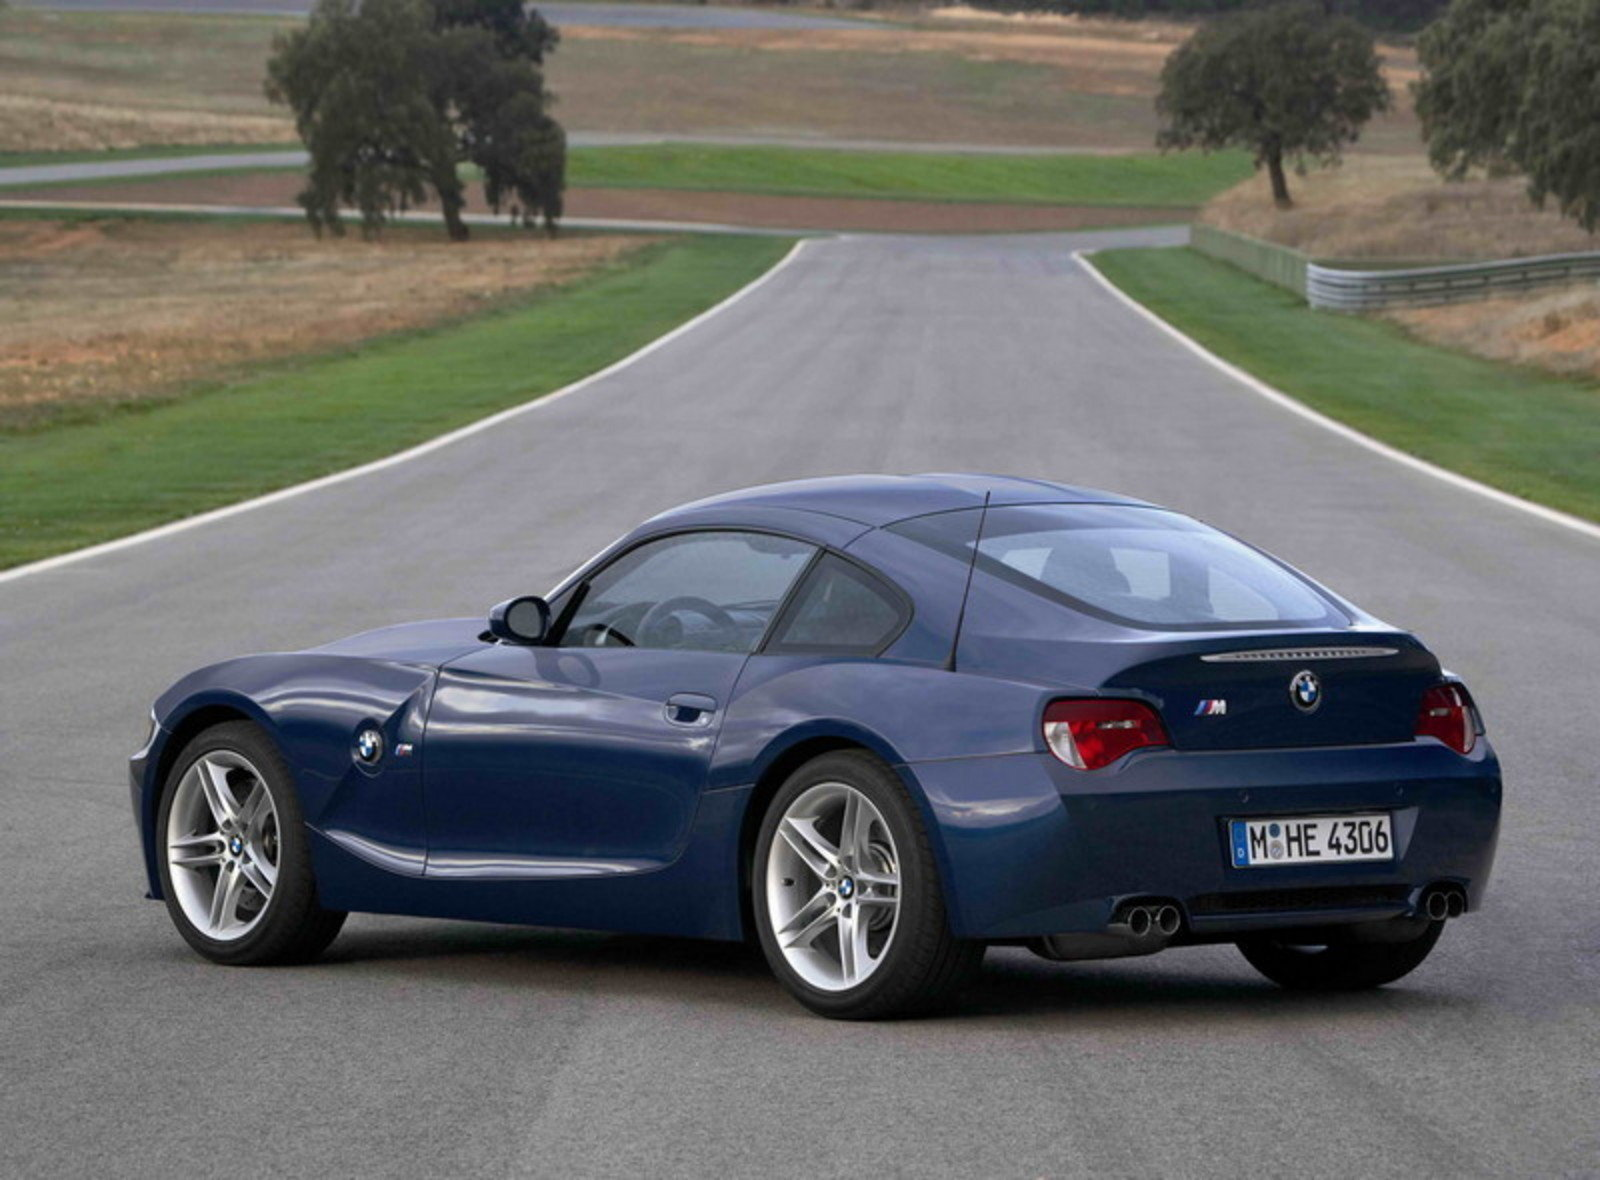 2007 Bmw Z4 M Coupe Picture 64639 Car Review Top Speed